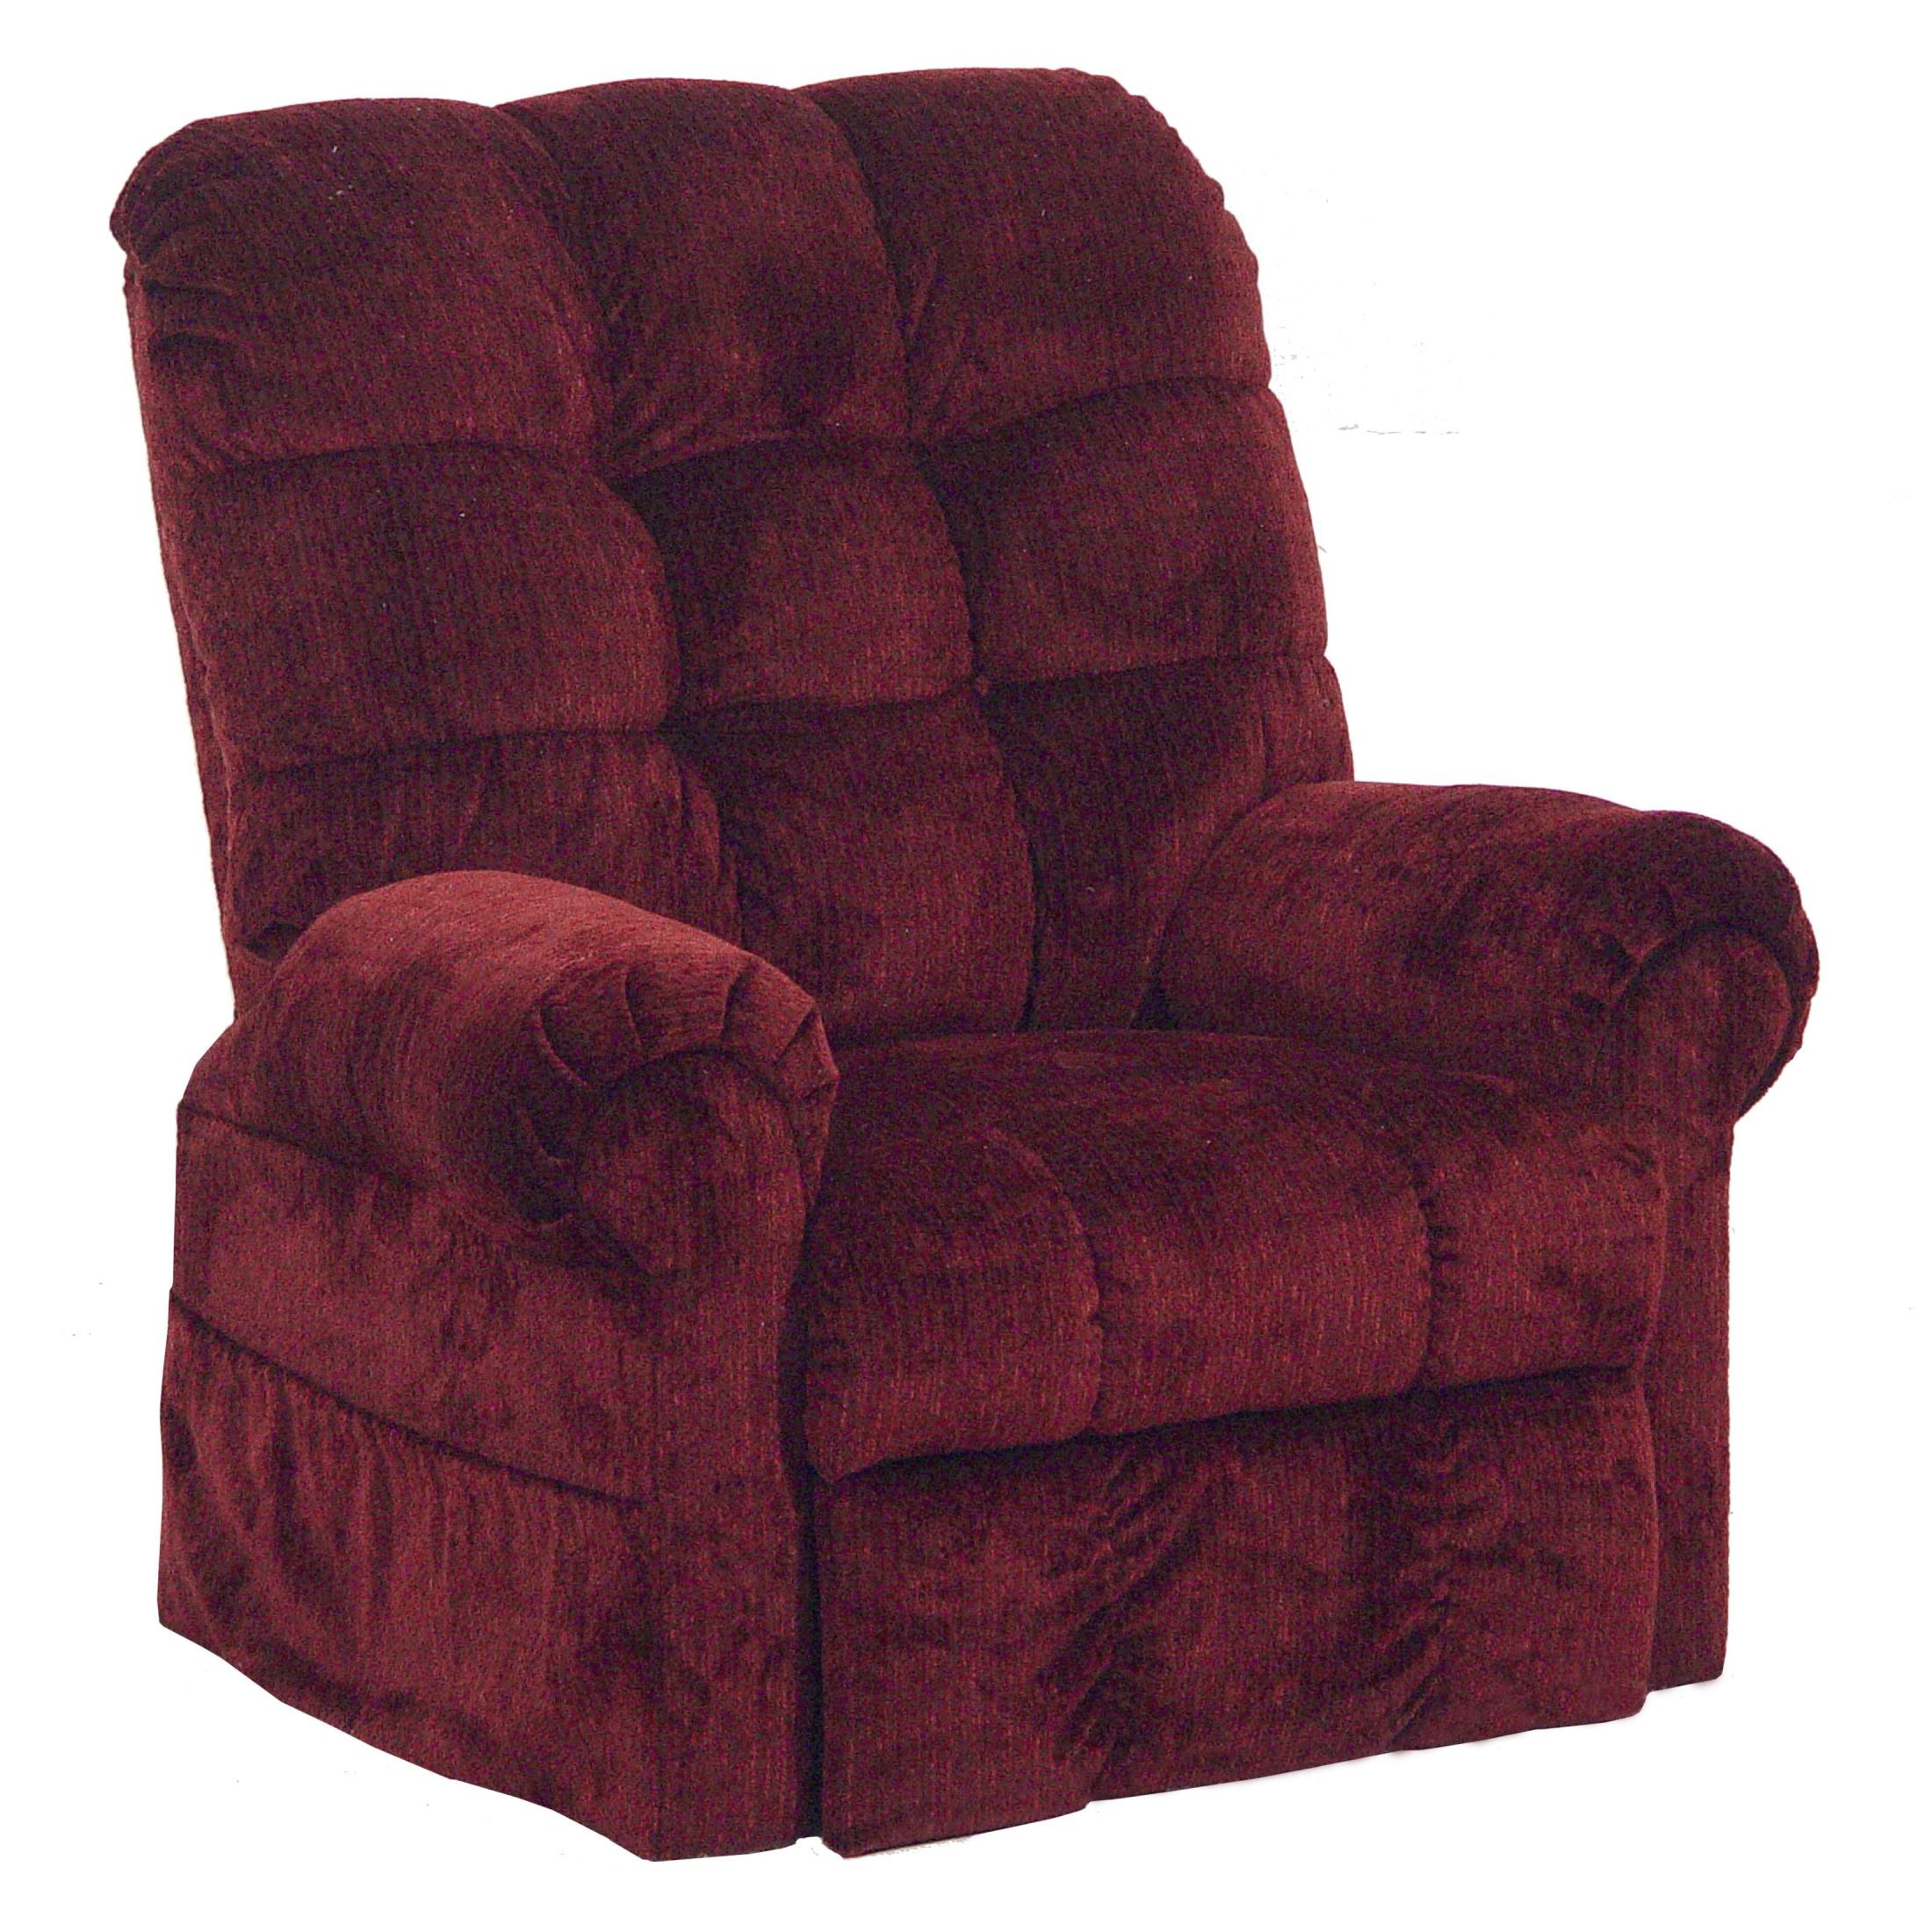 Omni chianti power lift recliner from catnapper for Catnapper cloud nine chaise recliner